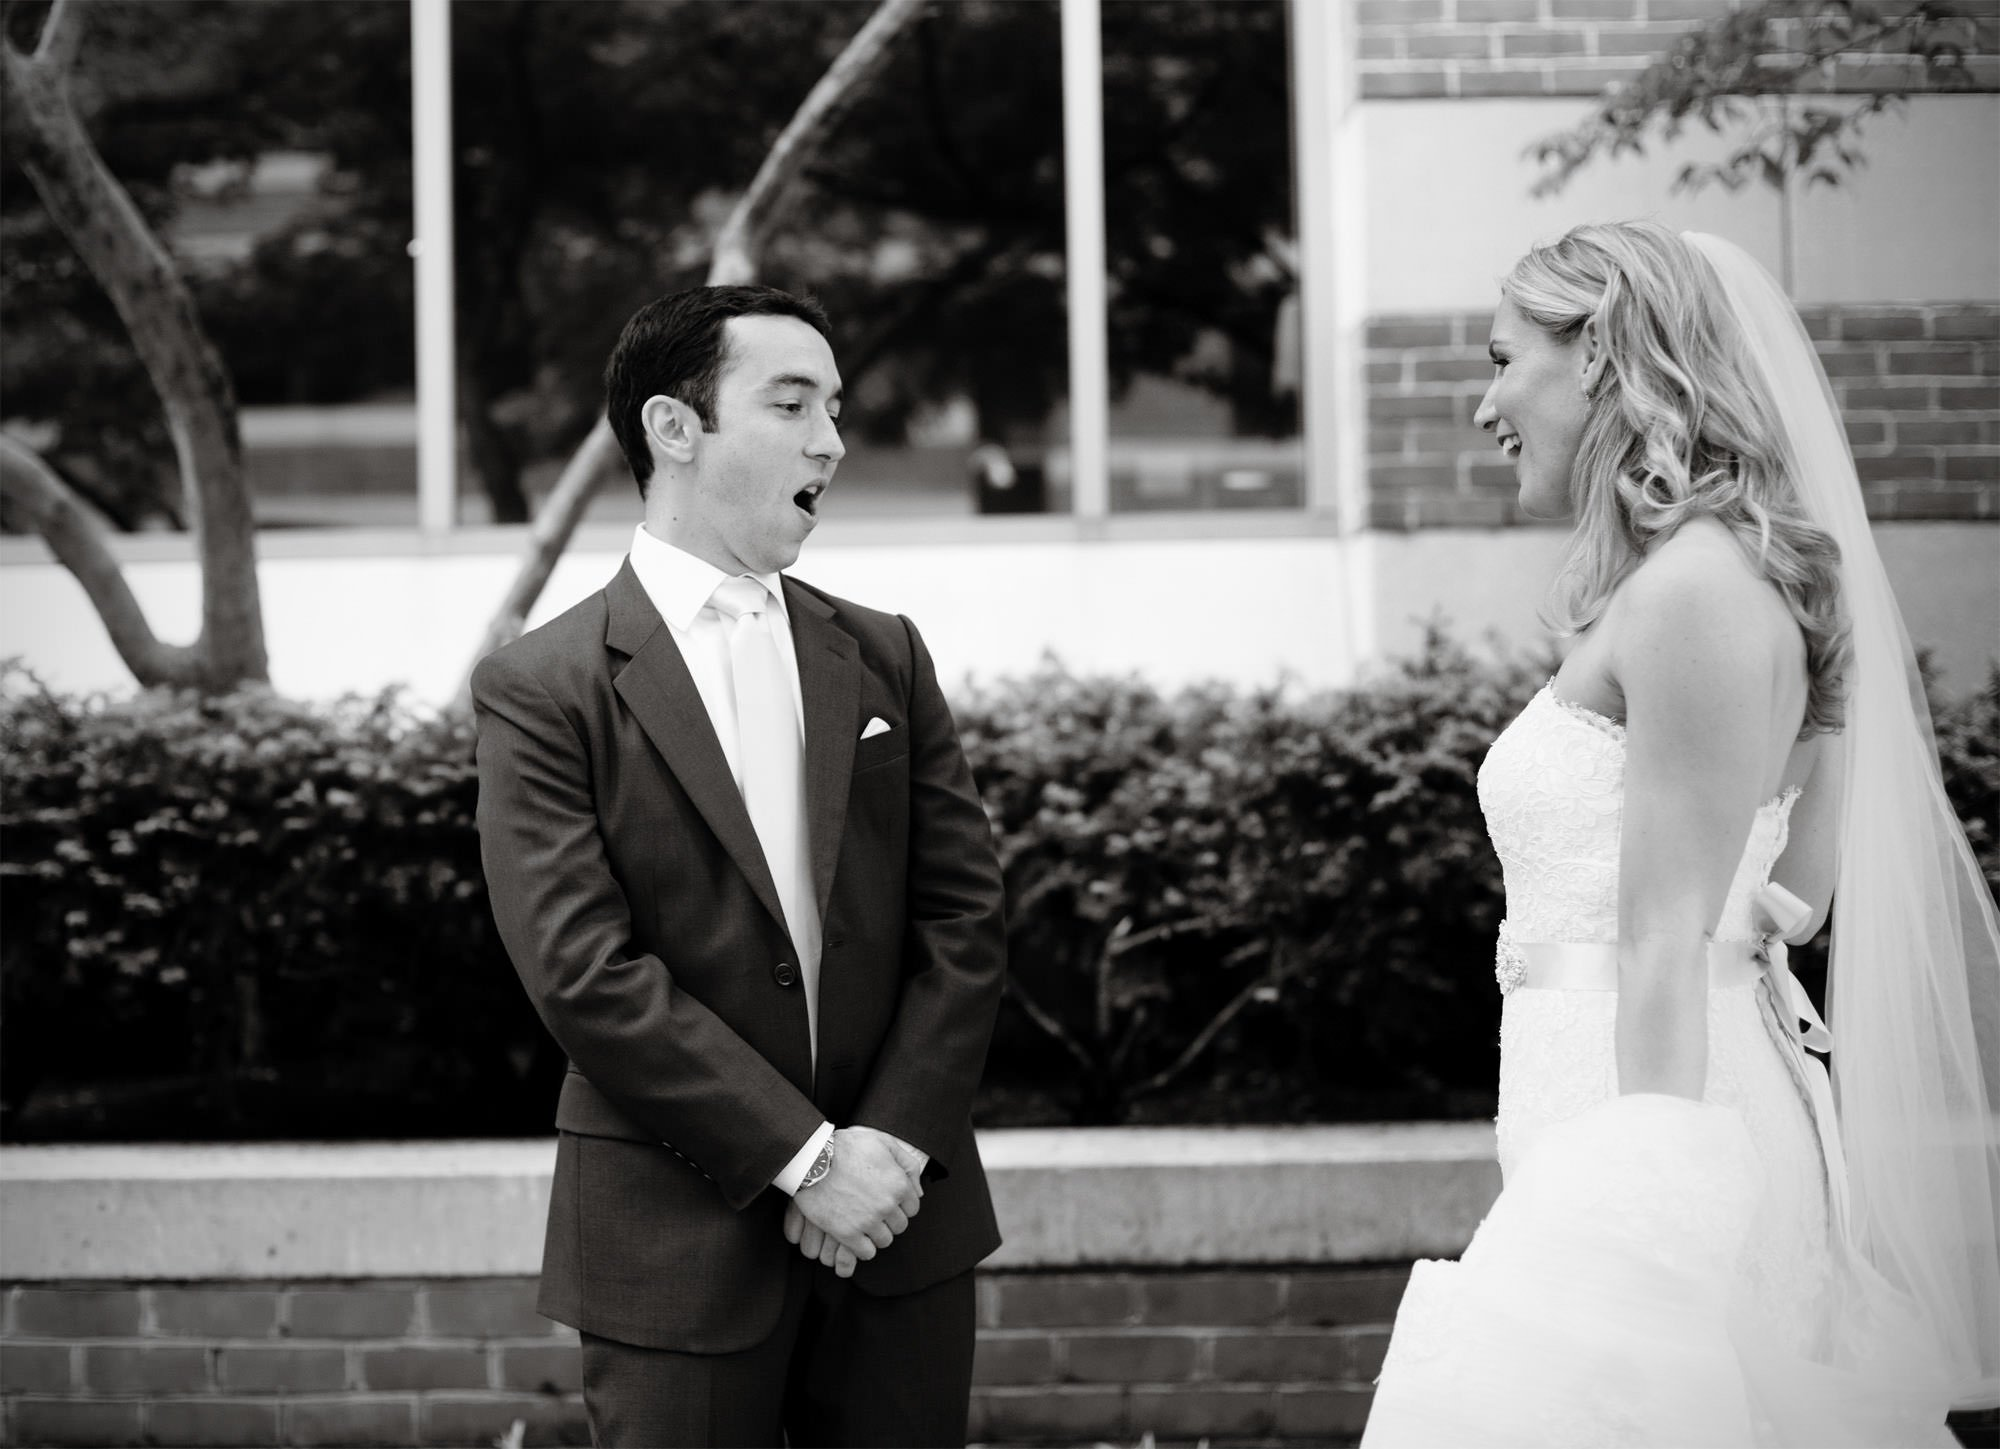 The bride and groom share their first look on their Park Hyatt Washington DC Wedding day.